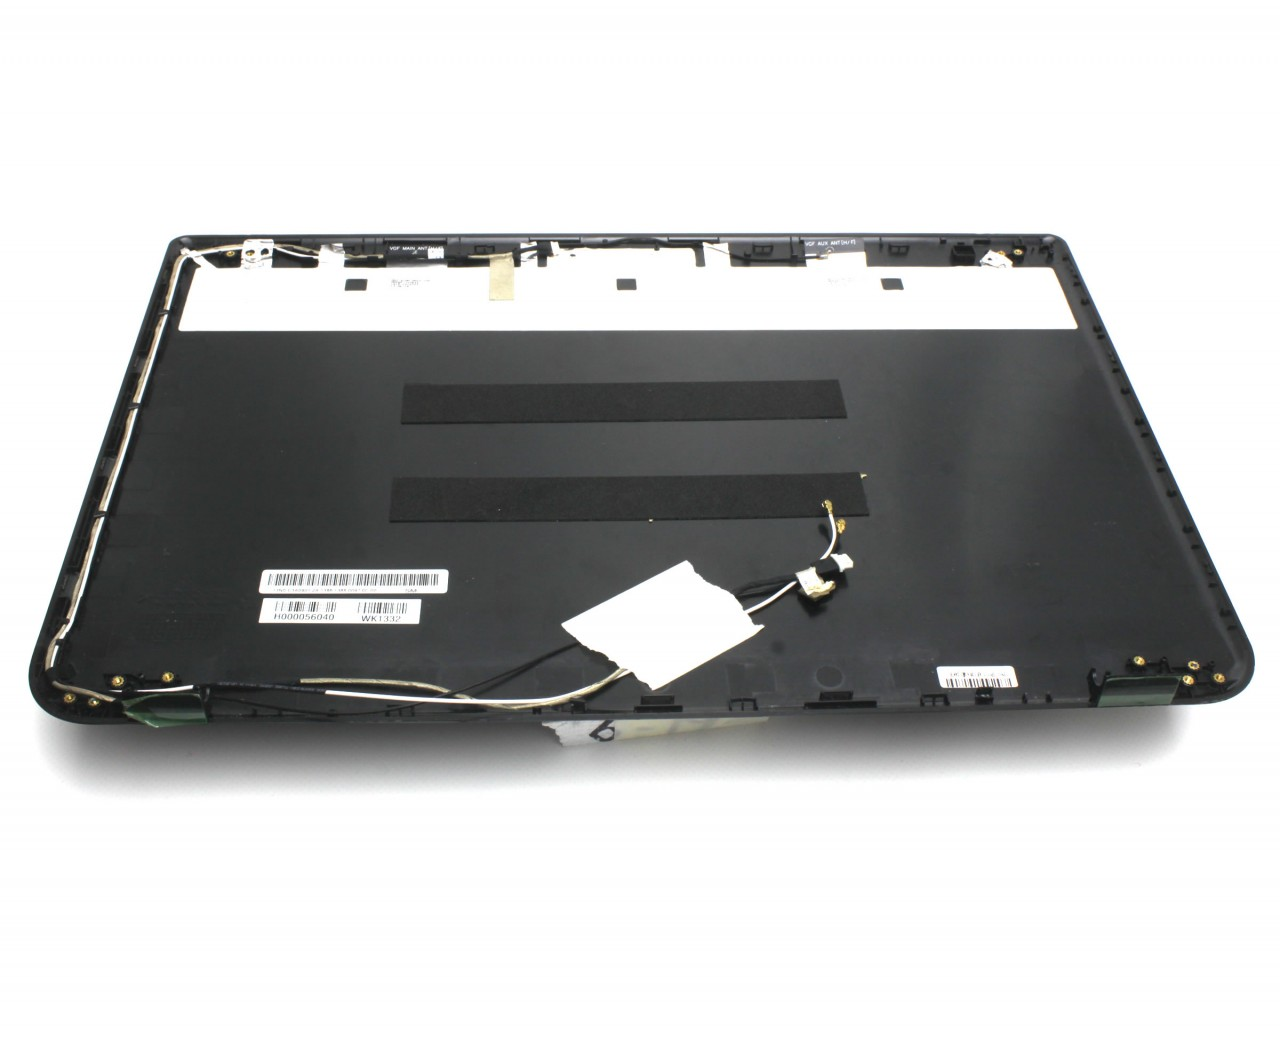 Capac Display BackCover Toshiba 13N0 C3A0901 Carcasa Display Neagra imagine powerlaptop.ro 2021